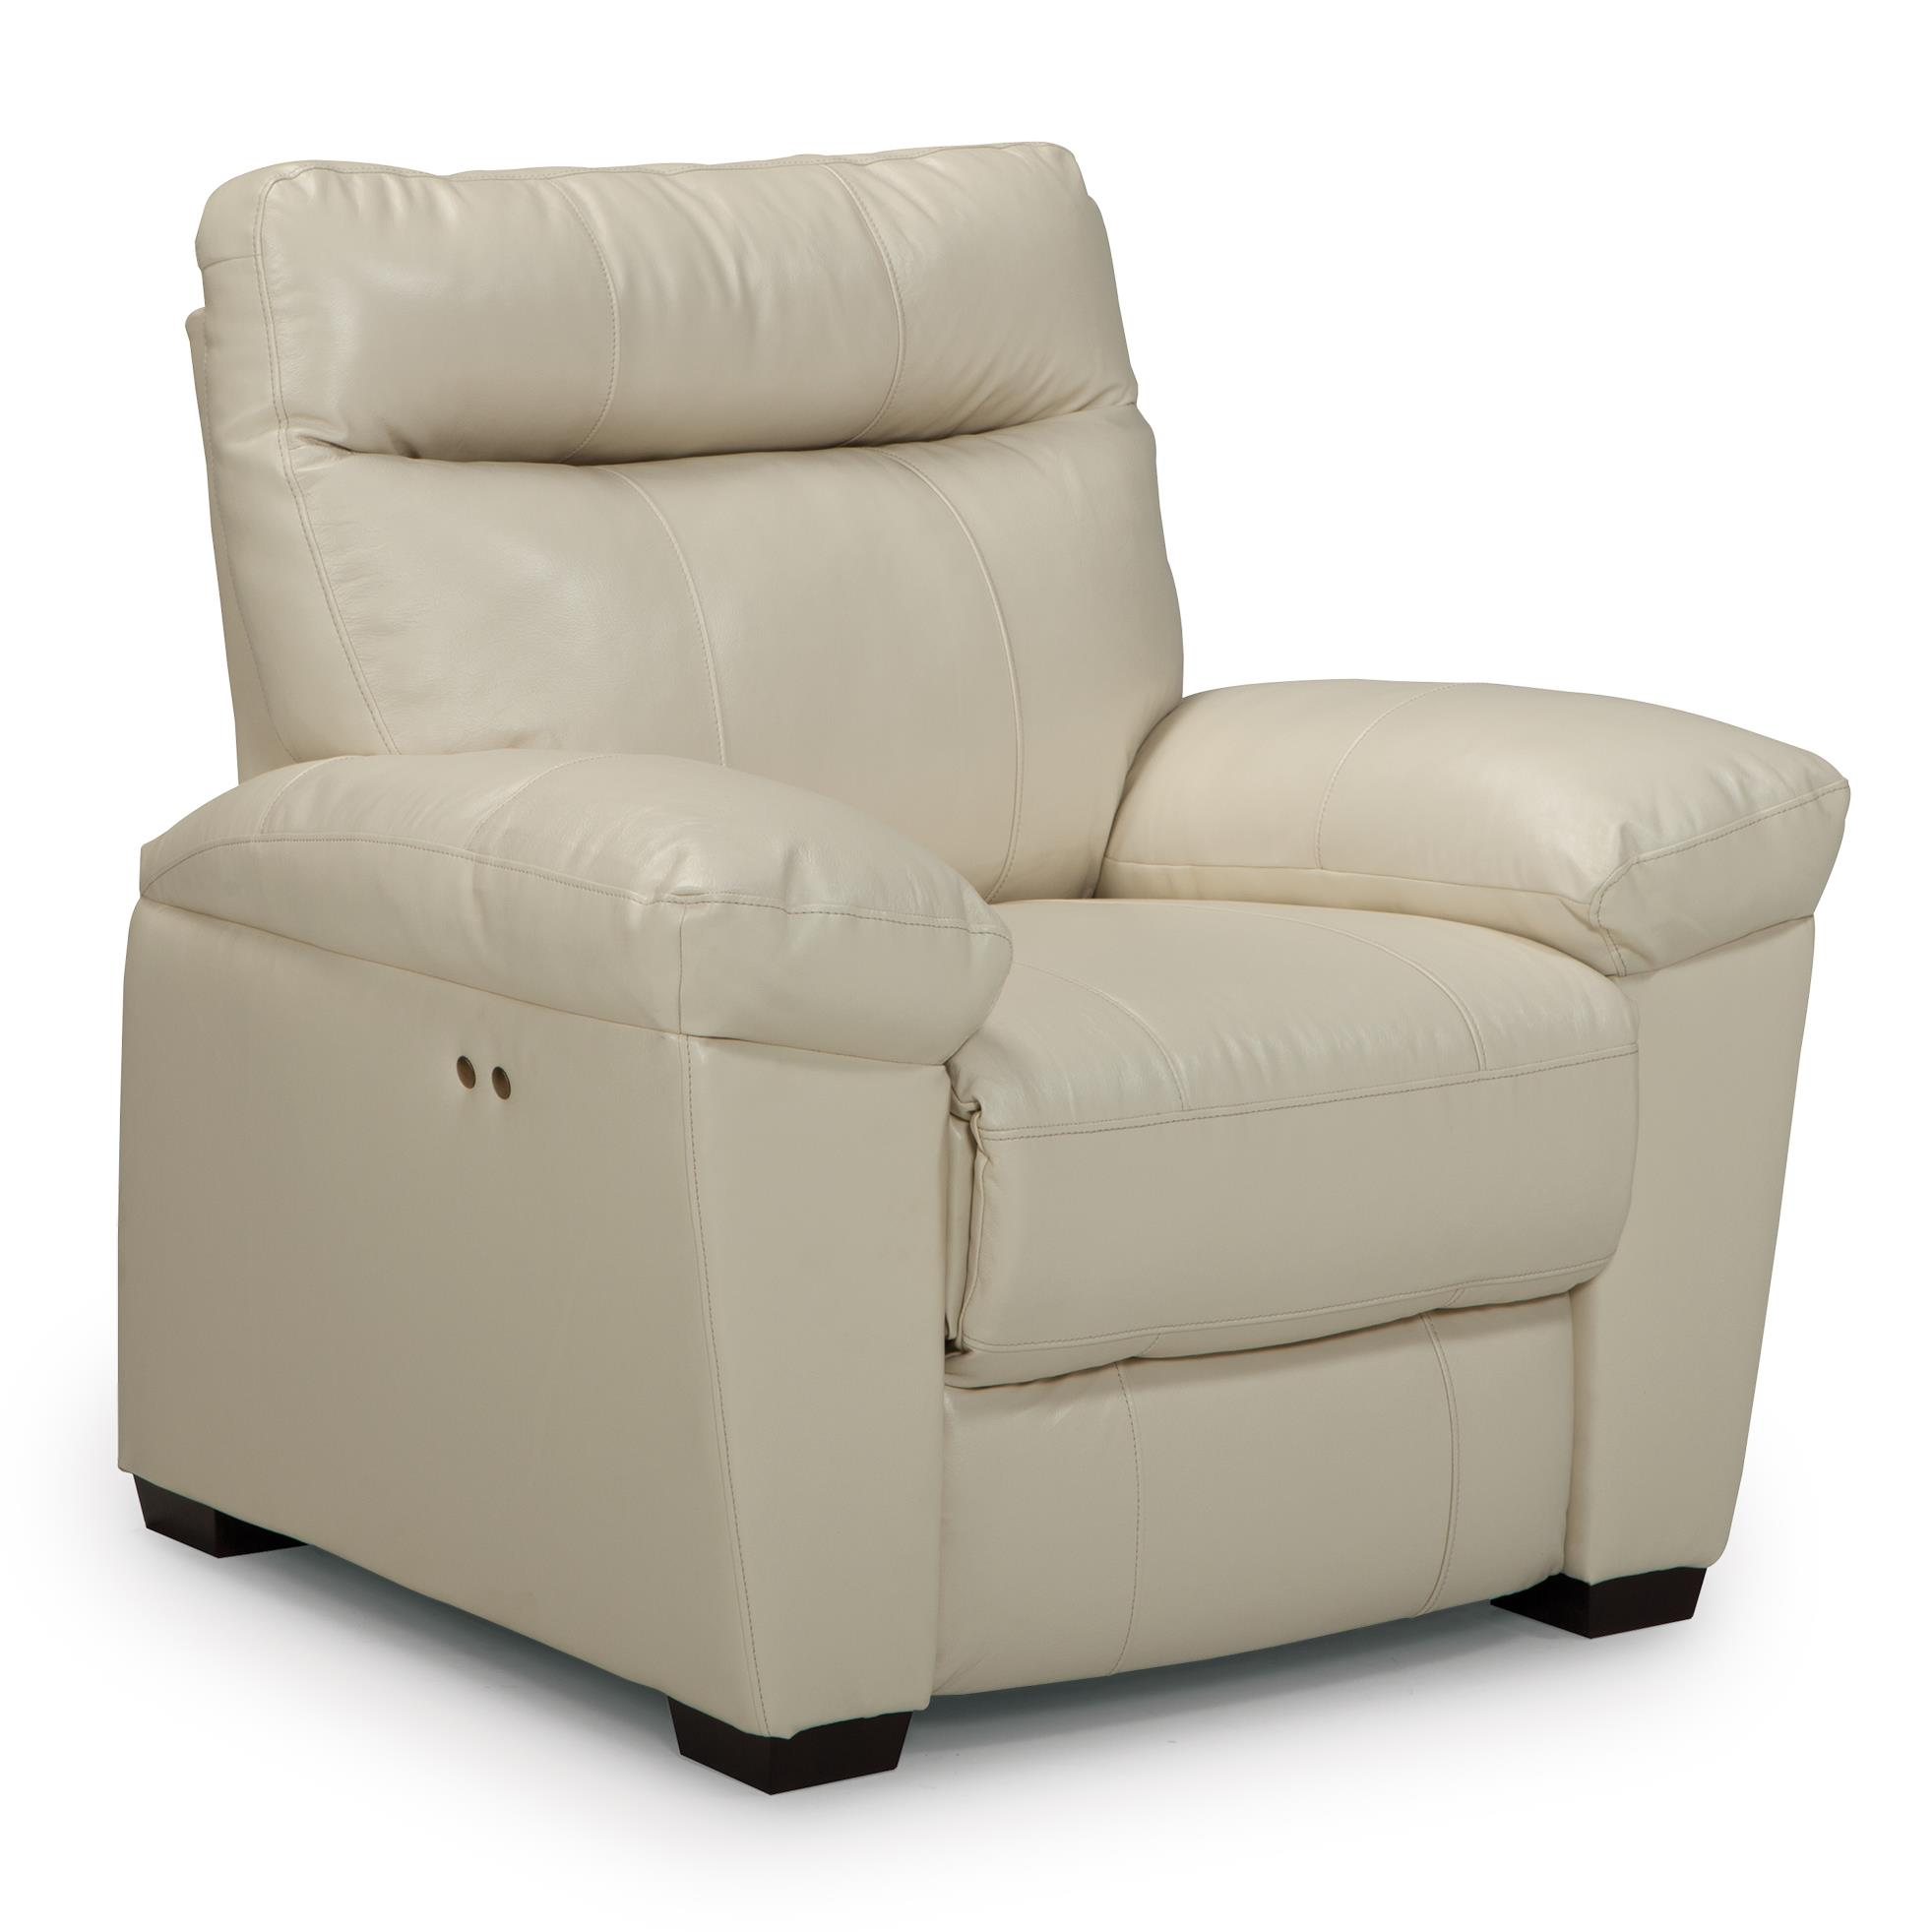 Best Home Furnishings Makena Power Space Saver Recliner - Item Number: R900CP2-78107L